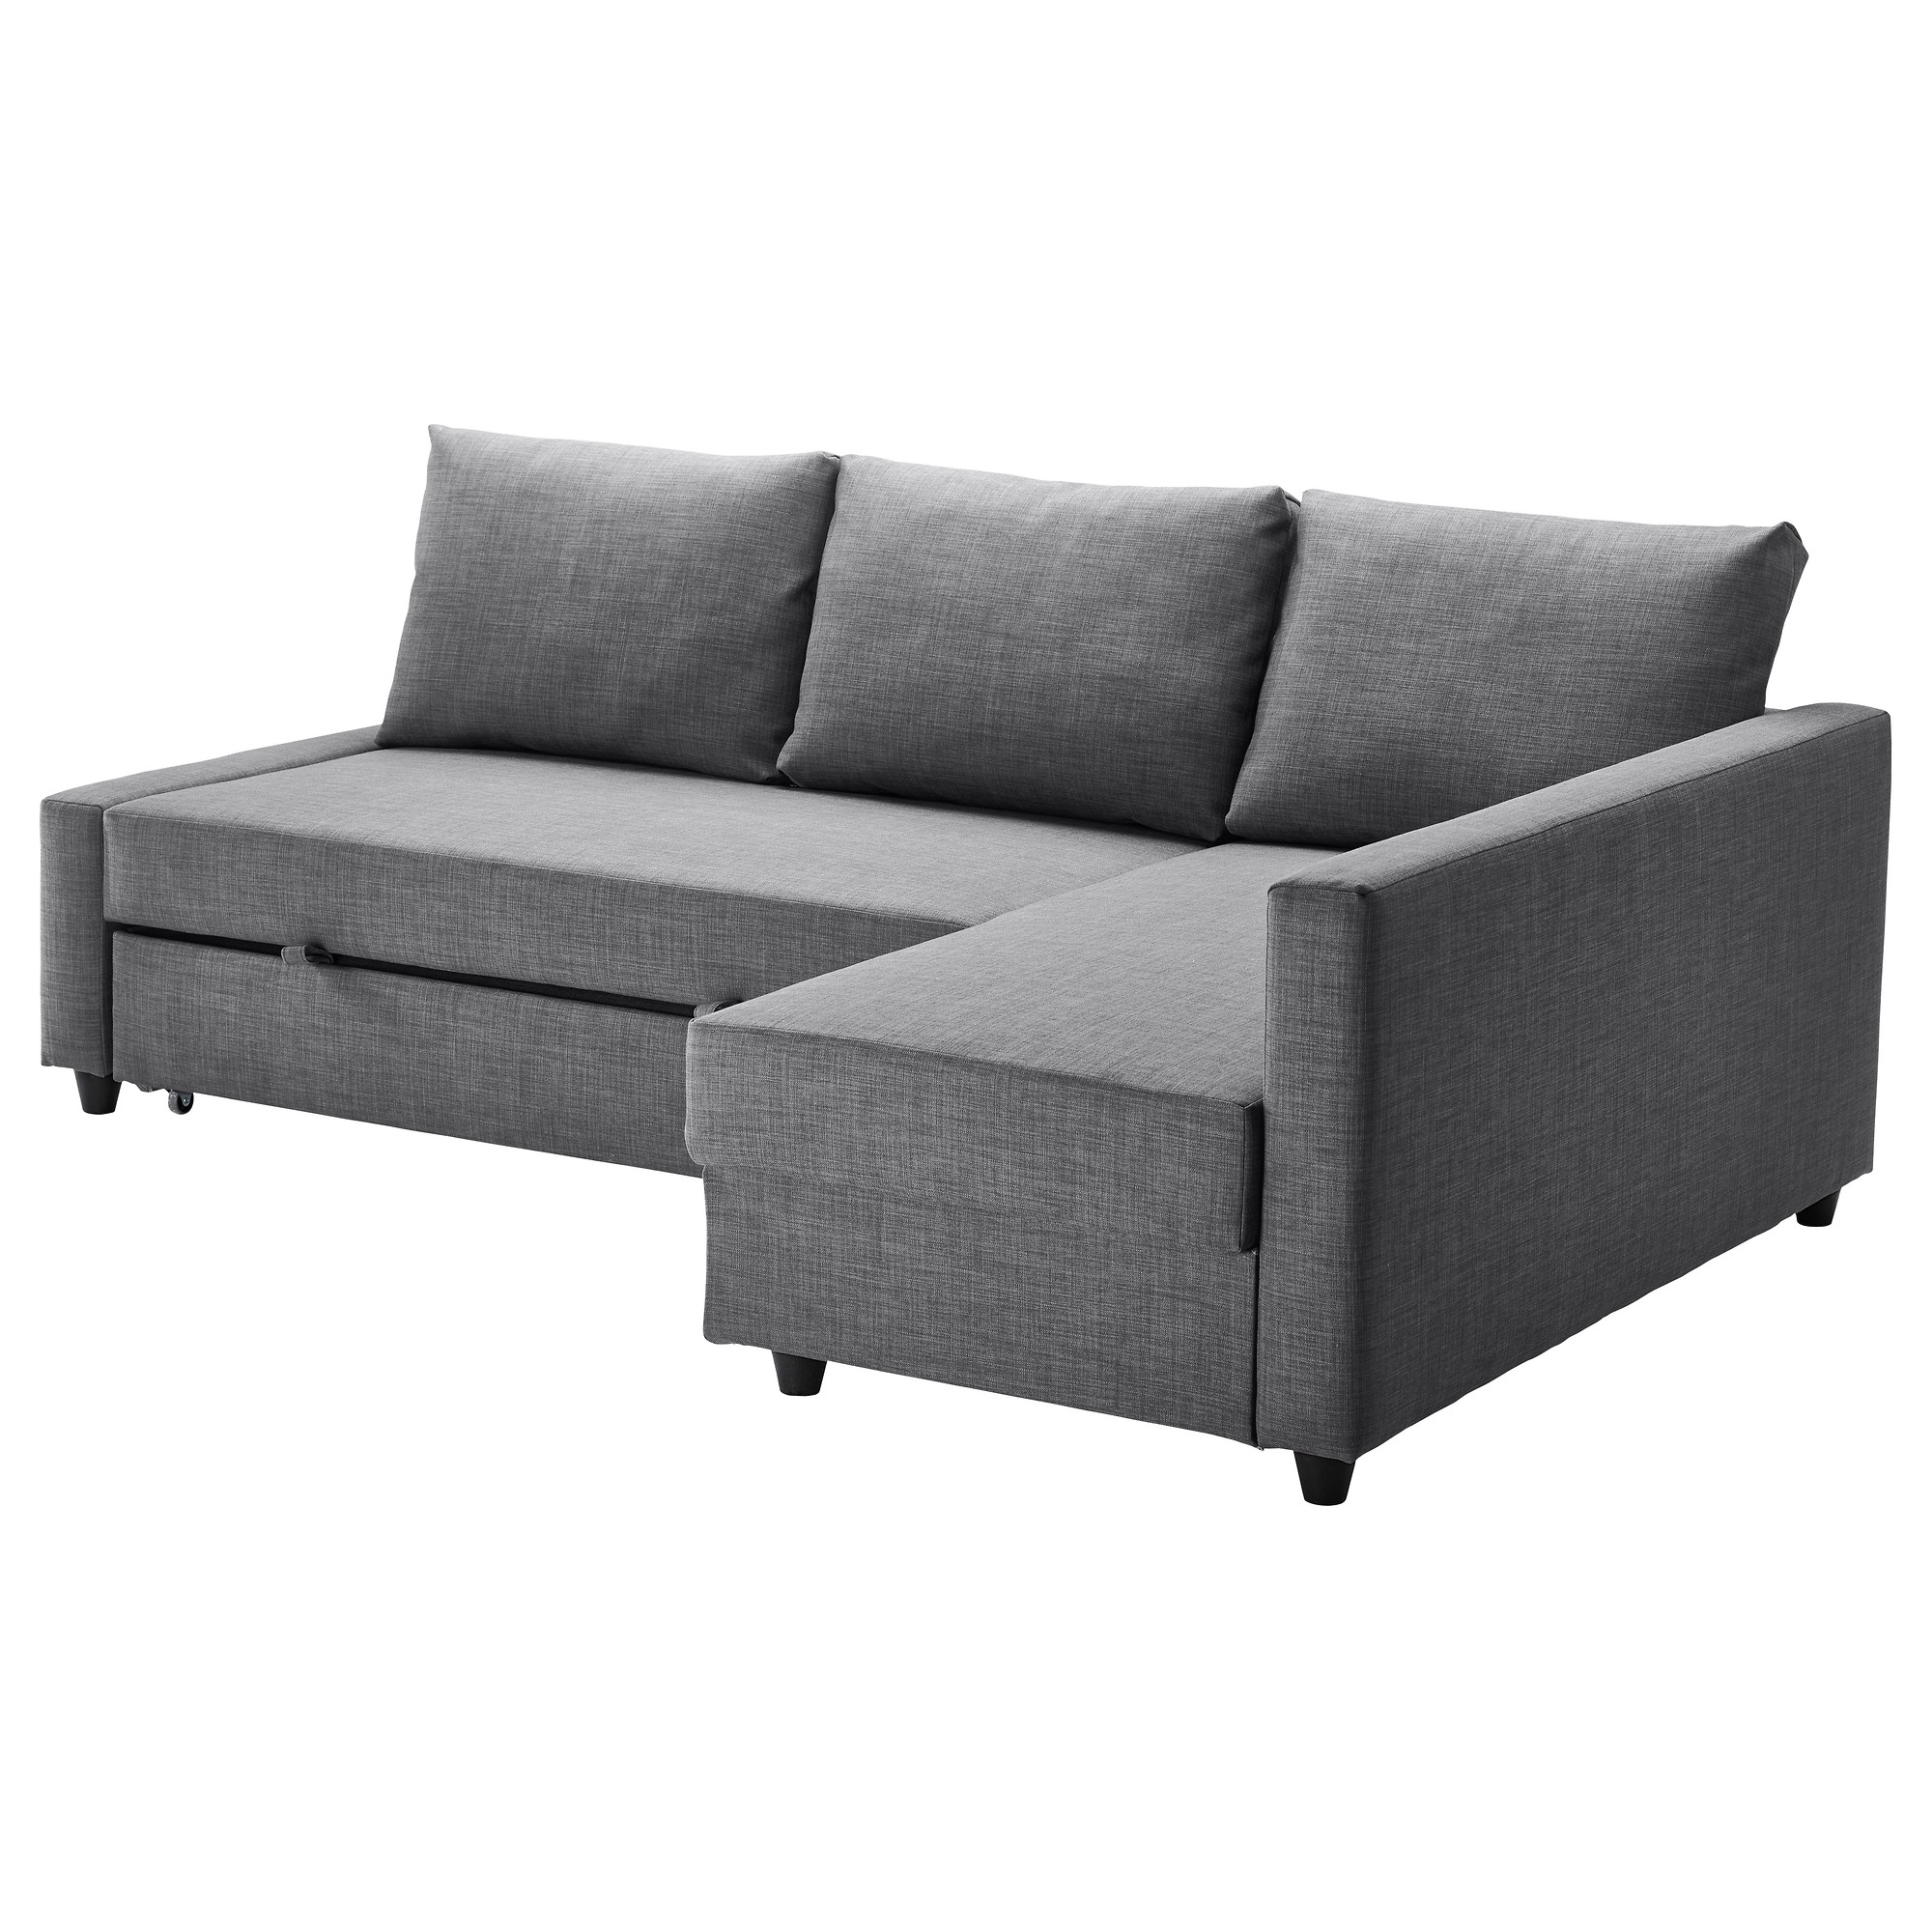 Friheten Sleeper Sectional3 Seat Wstorage Skiftebo Dark Gray With L Shaped Sofa Bed (Image 4 of 15)